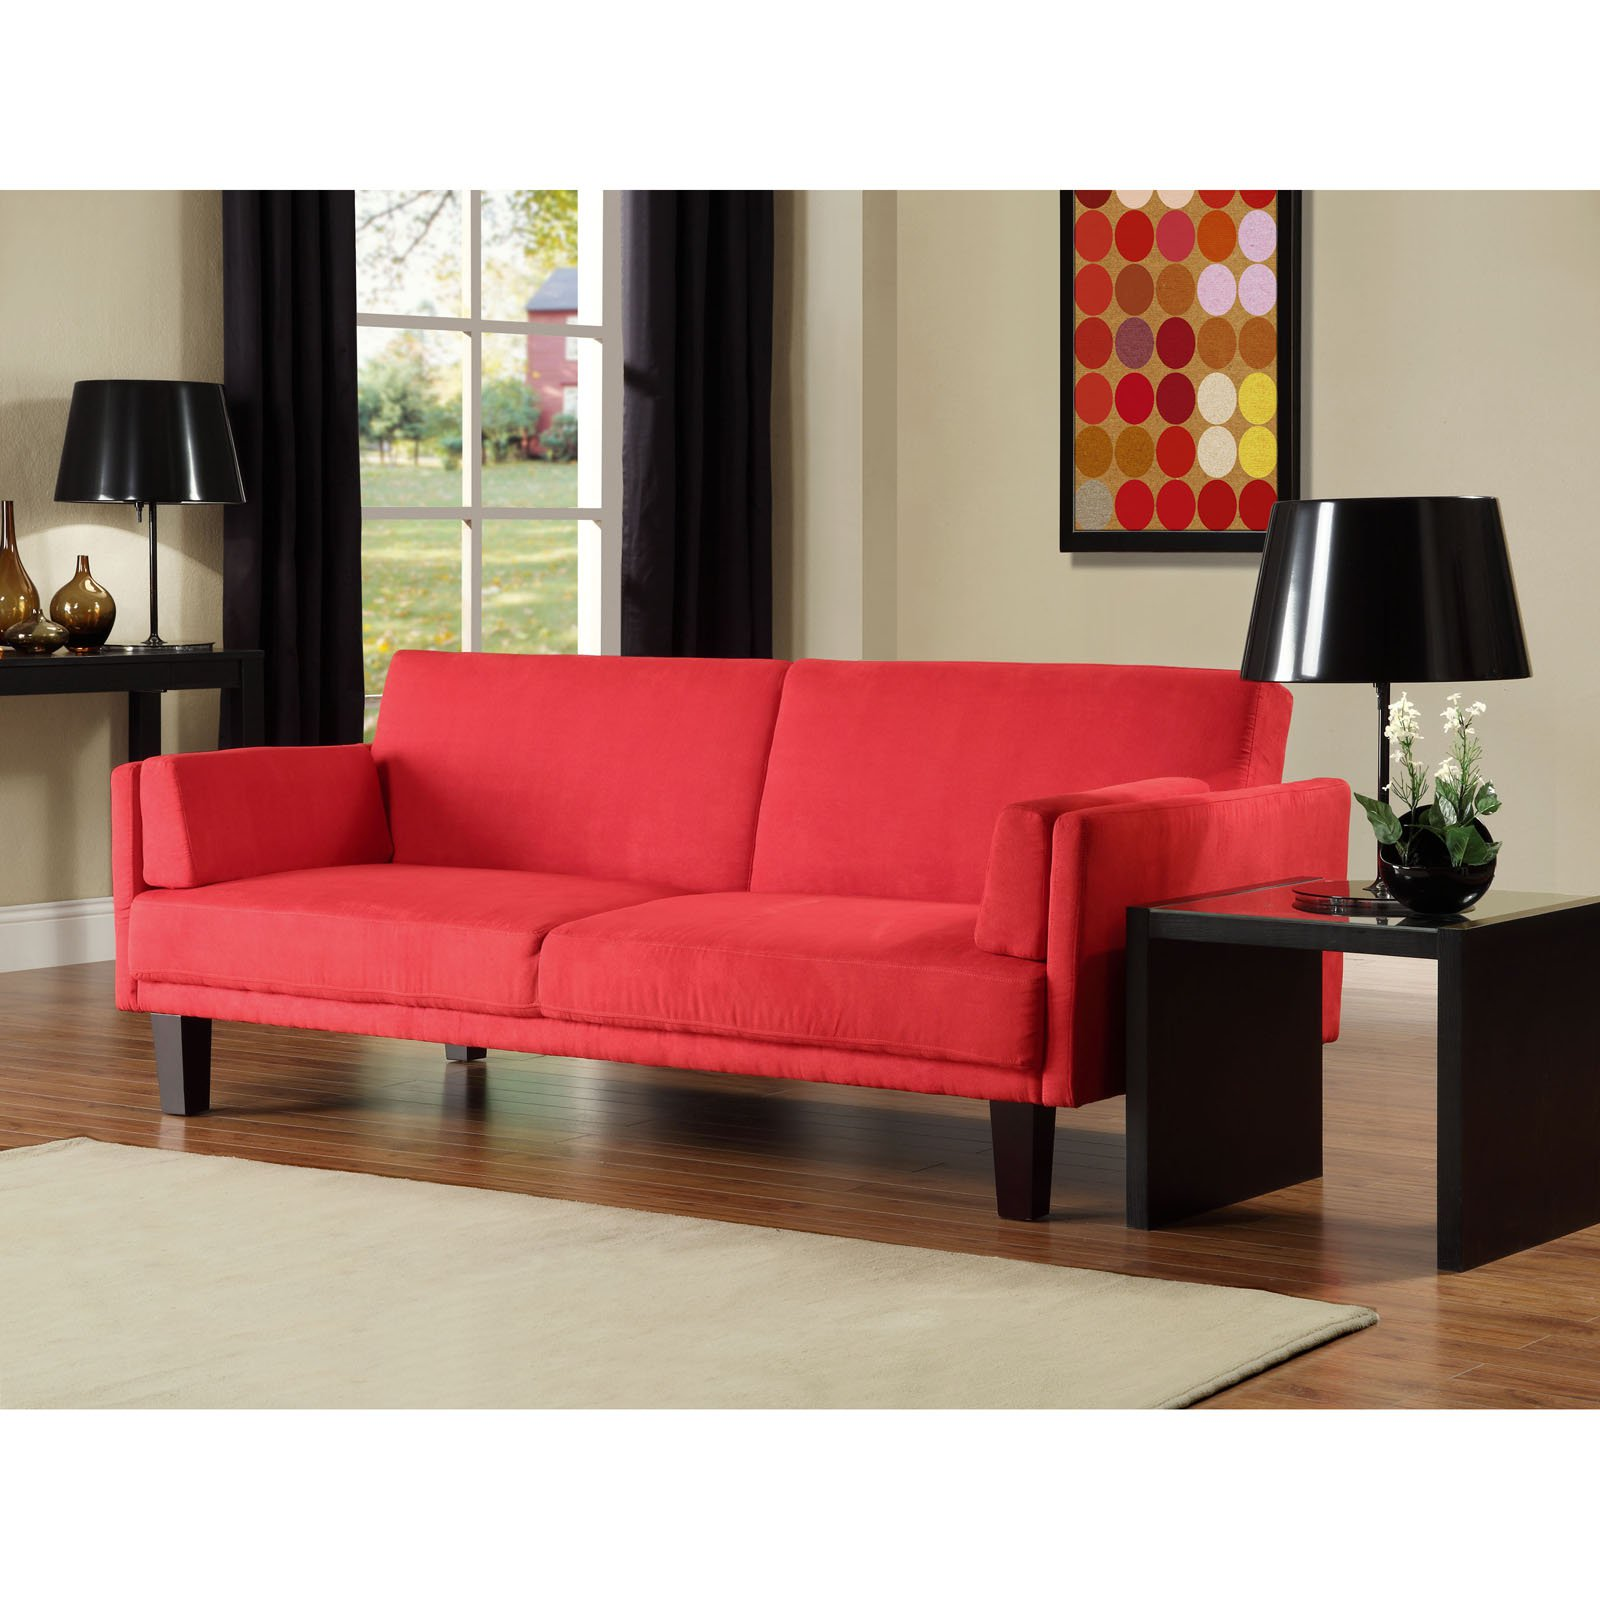 atherton home soho convertible futon sofa bed and lounger luxury for everyday use